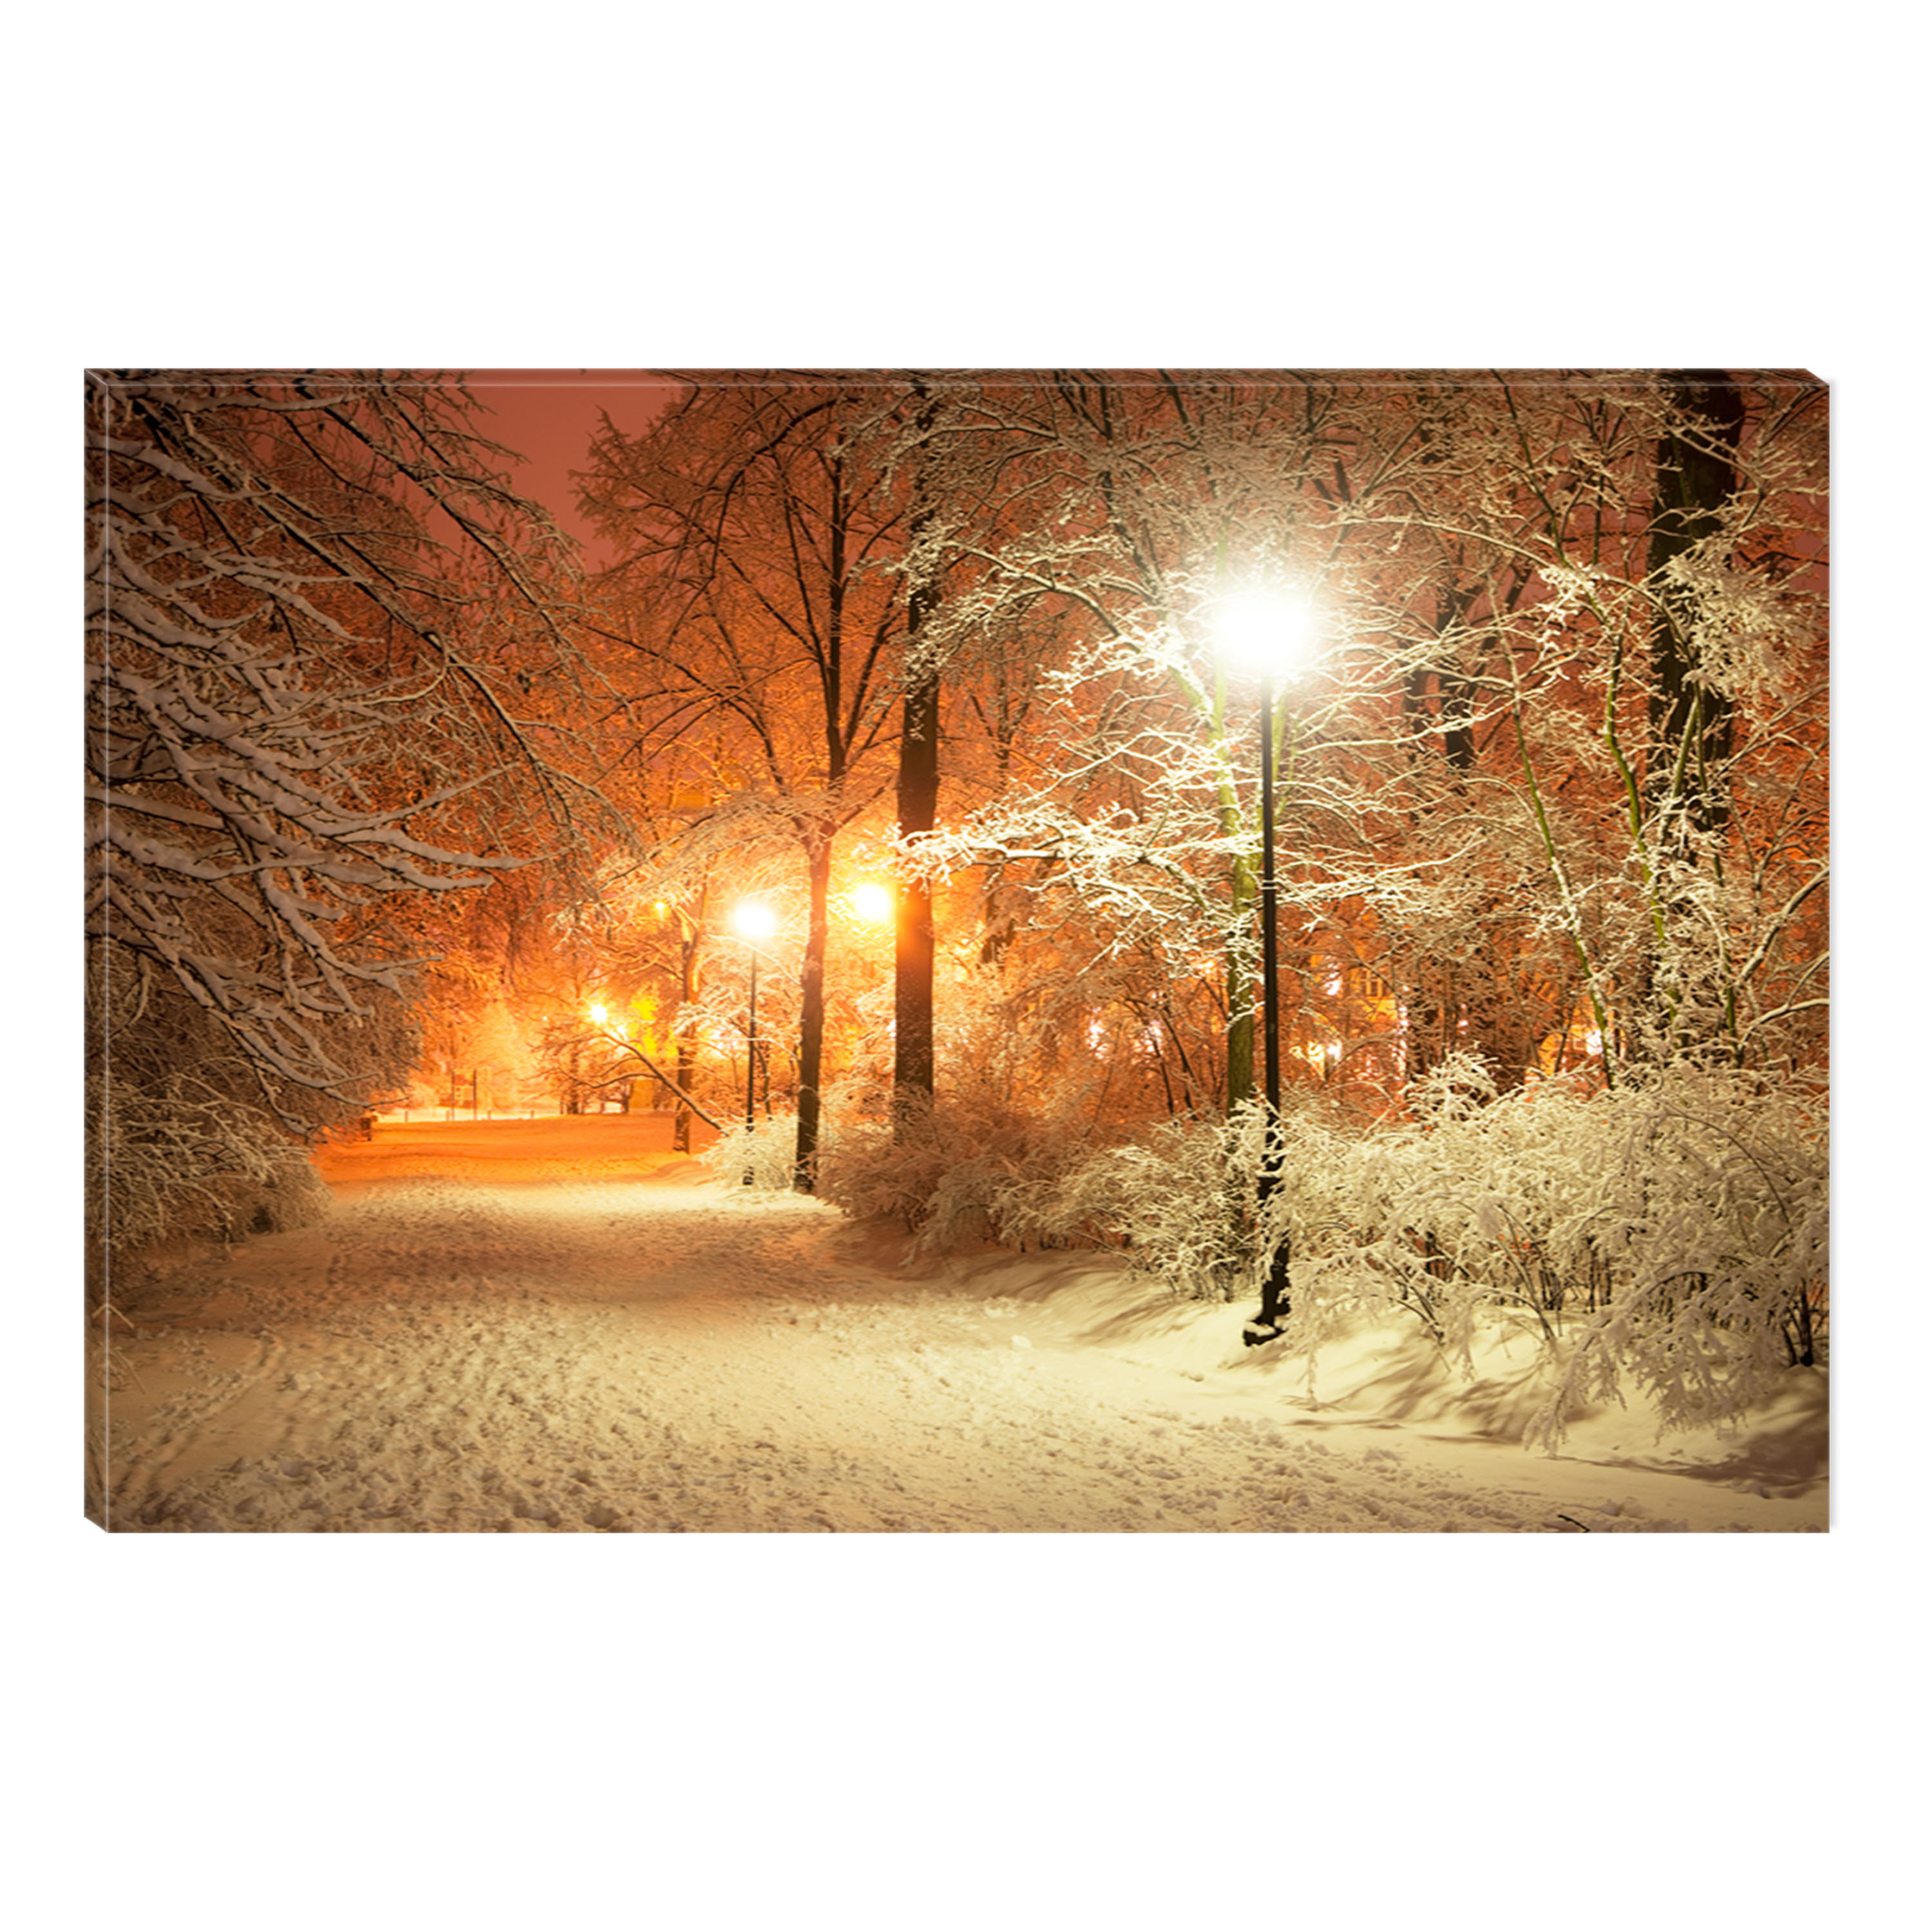 Startonight Canvas Wall Art Winter in Park, Illuminated Landscape Artwork Painting 5 Stars